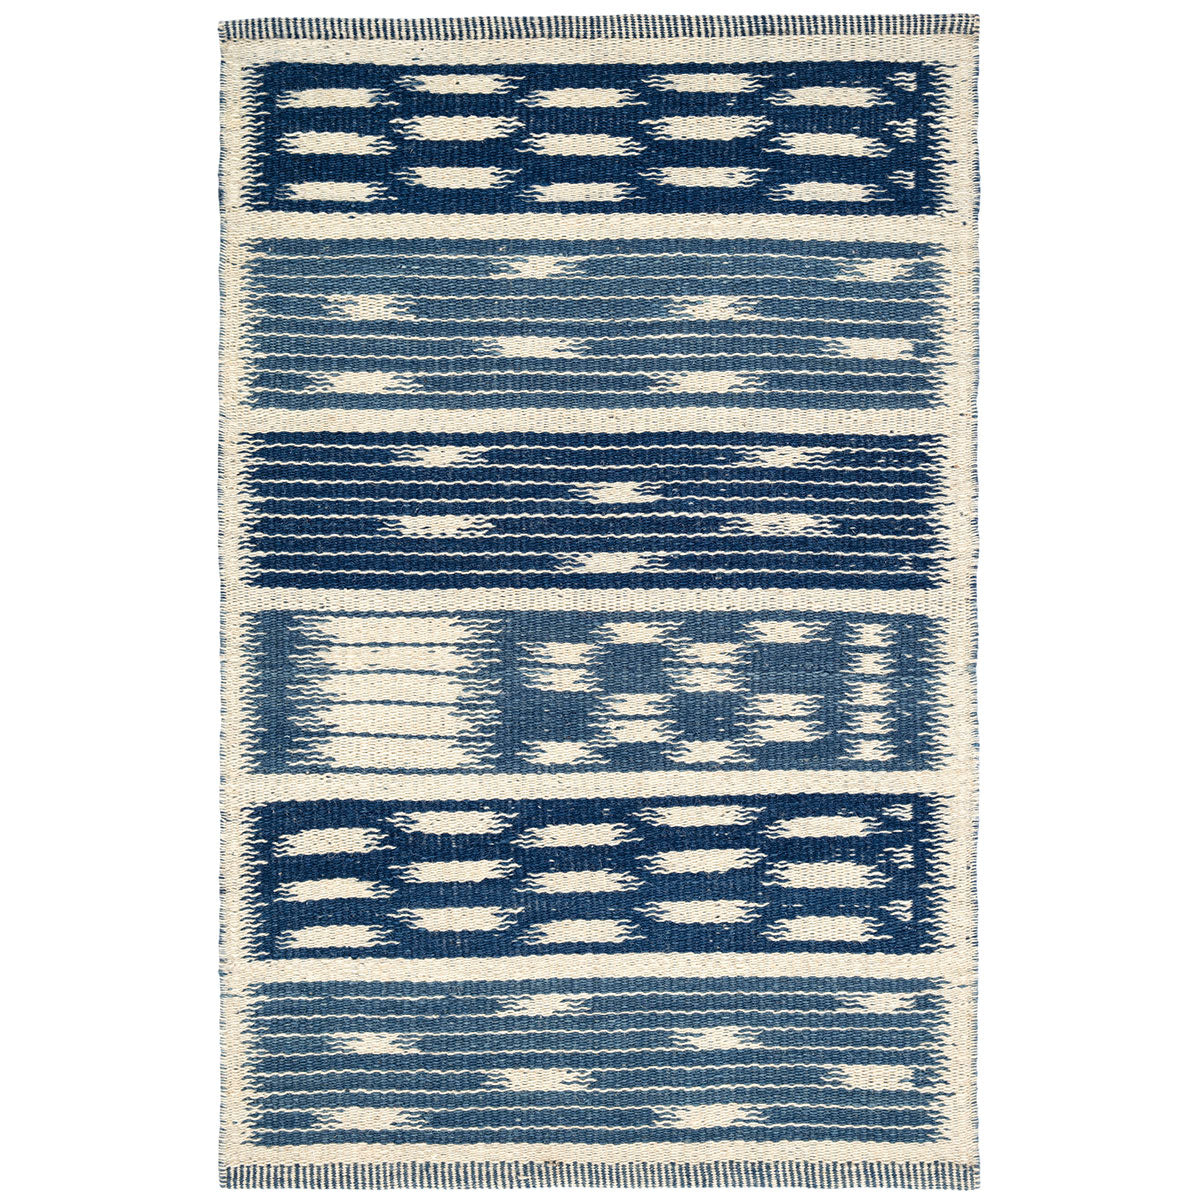 Kasuri Woven Wool Rug by Mark Sikes